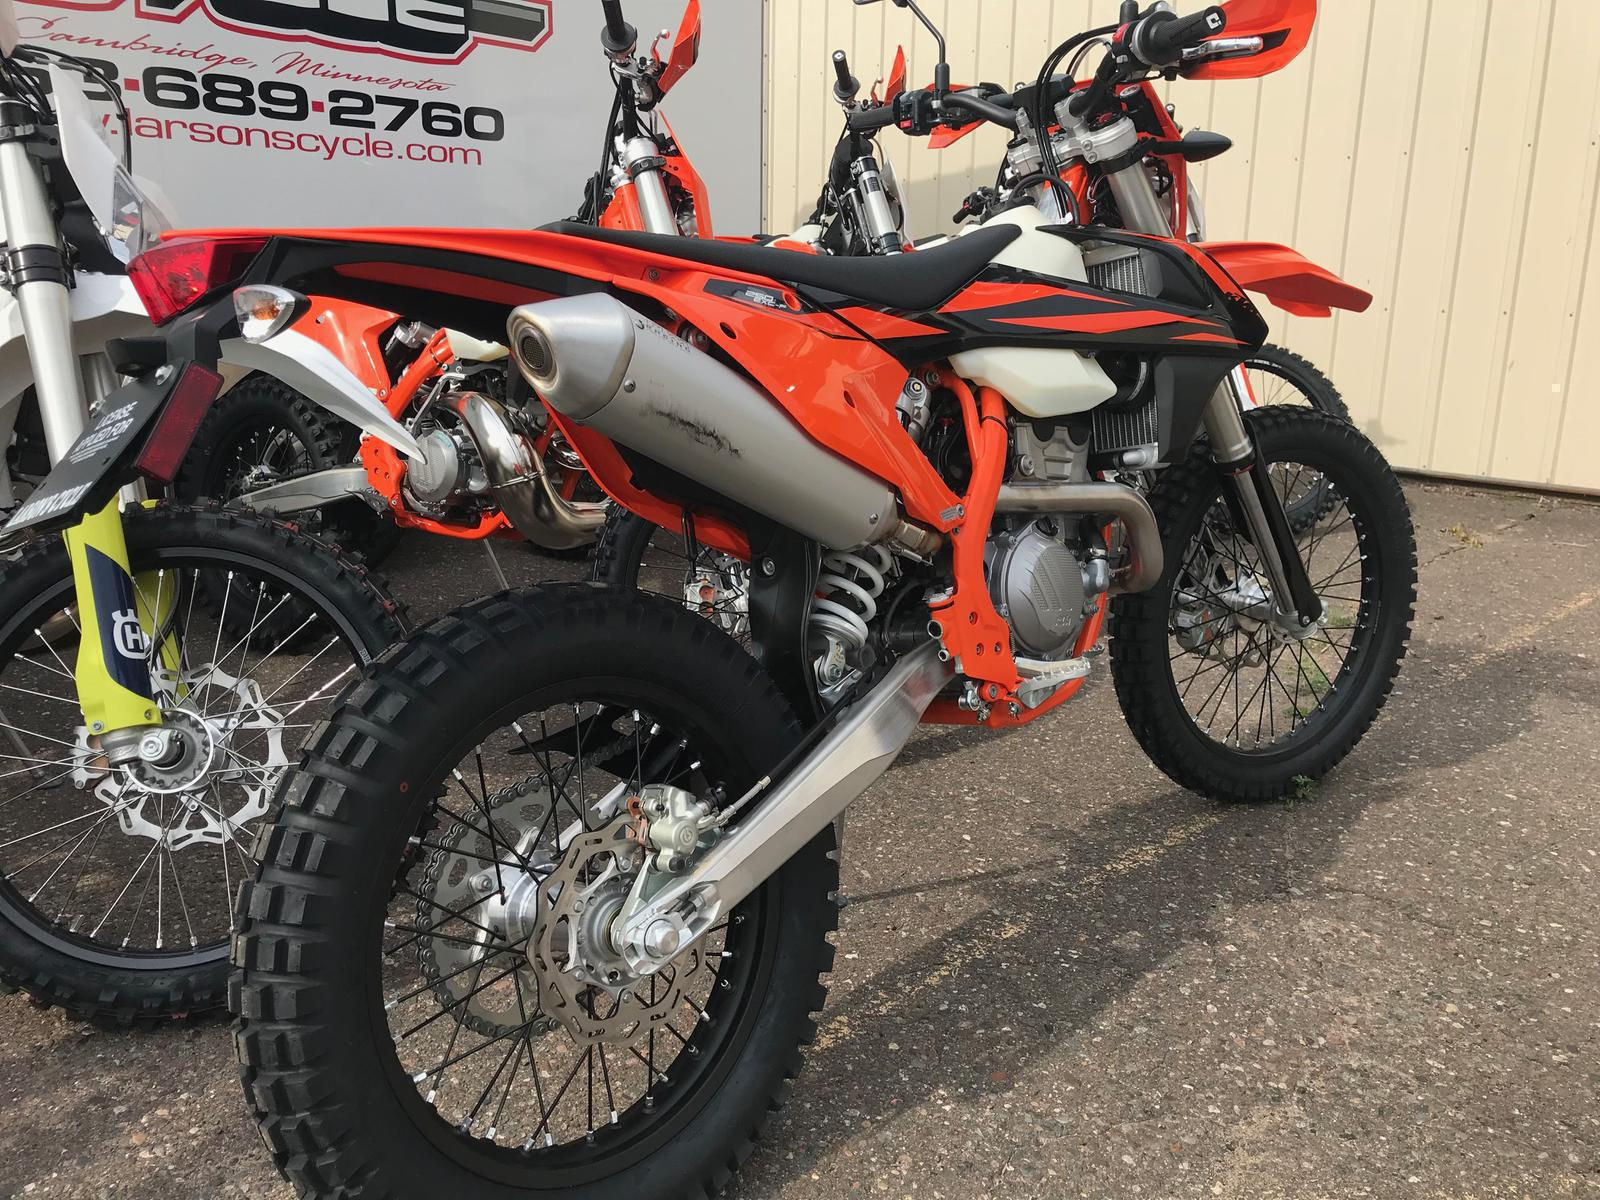 2019 KTM 250 EXC-F for sale in Cambridge, MN  Larson's Cycle Inc